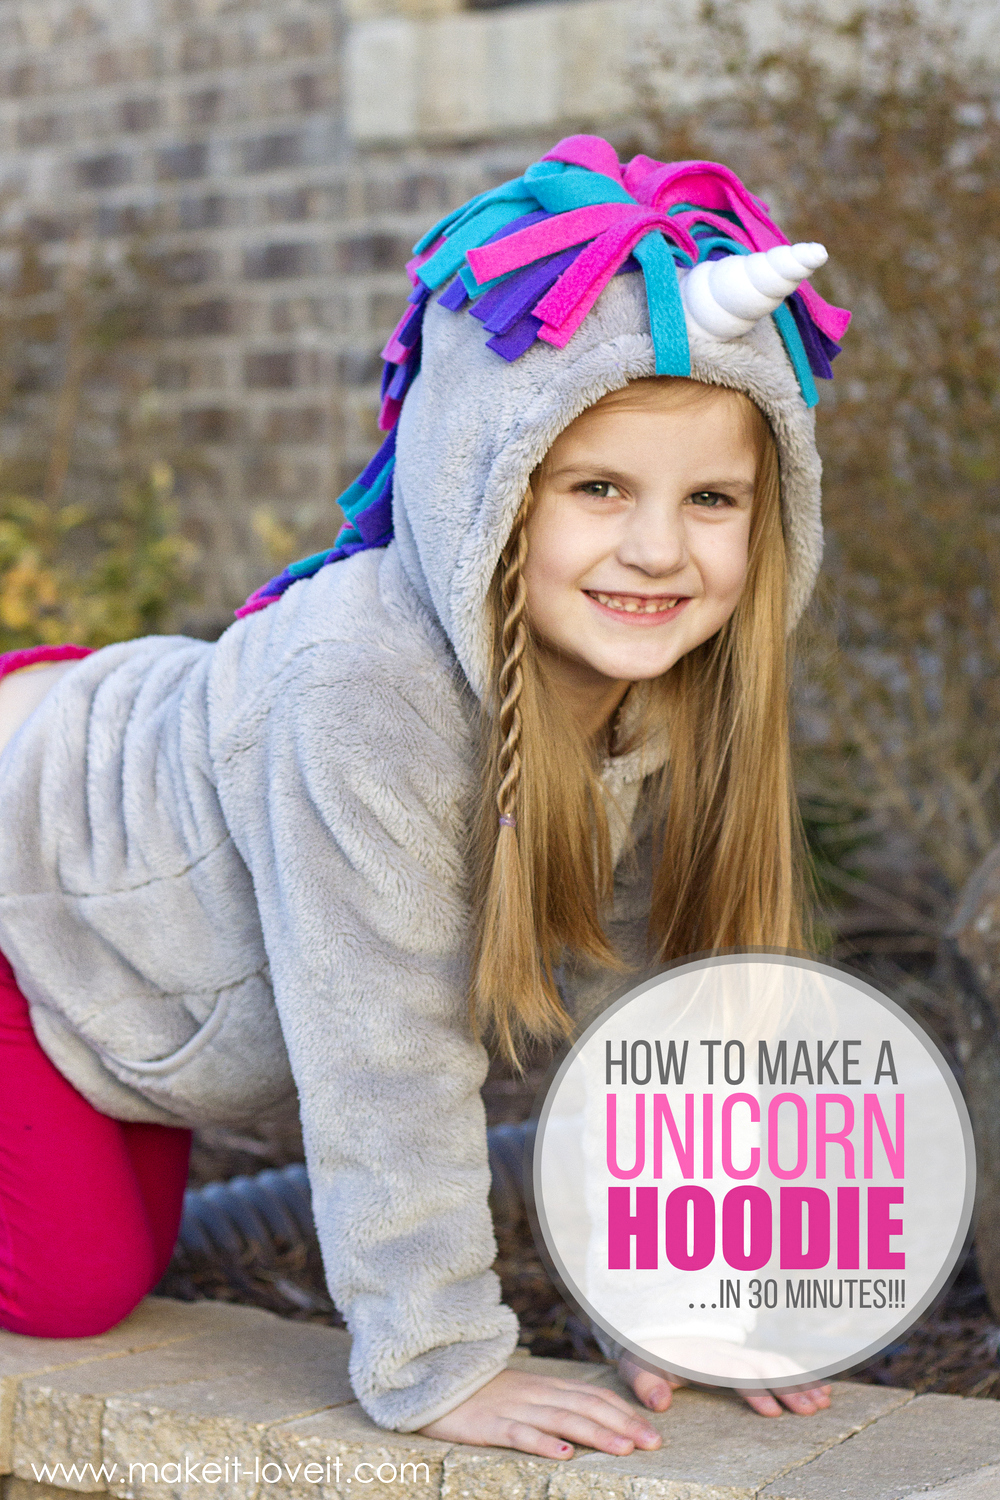 Make a UNICORN HOODIE…in 30 minutes!